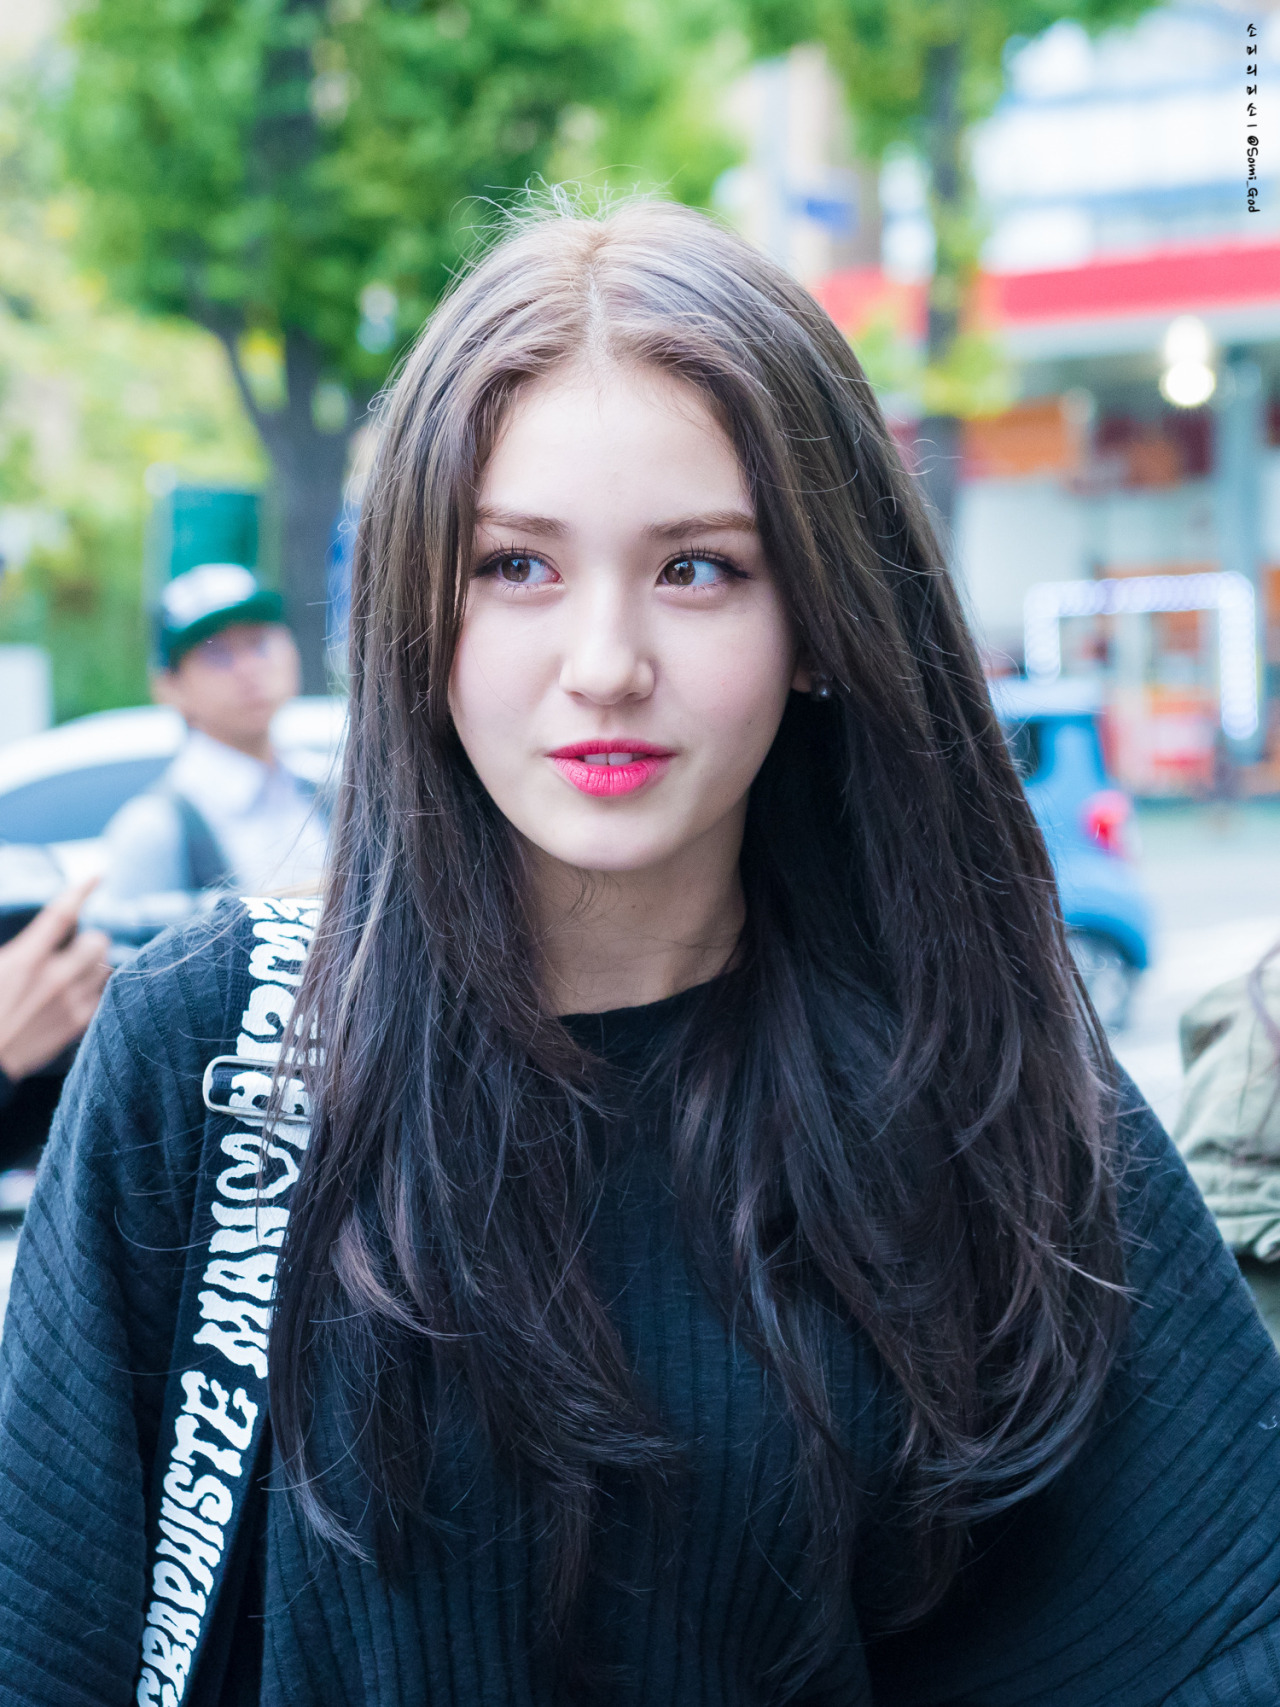 Bts Iphone Wallpaper Jeon Somi Android Iphone Wallpaper 92067 Asiachan Kpop